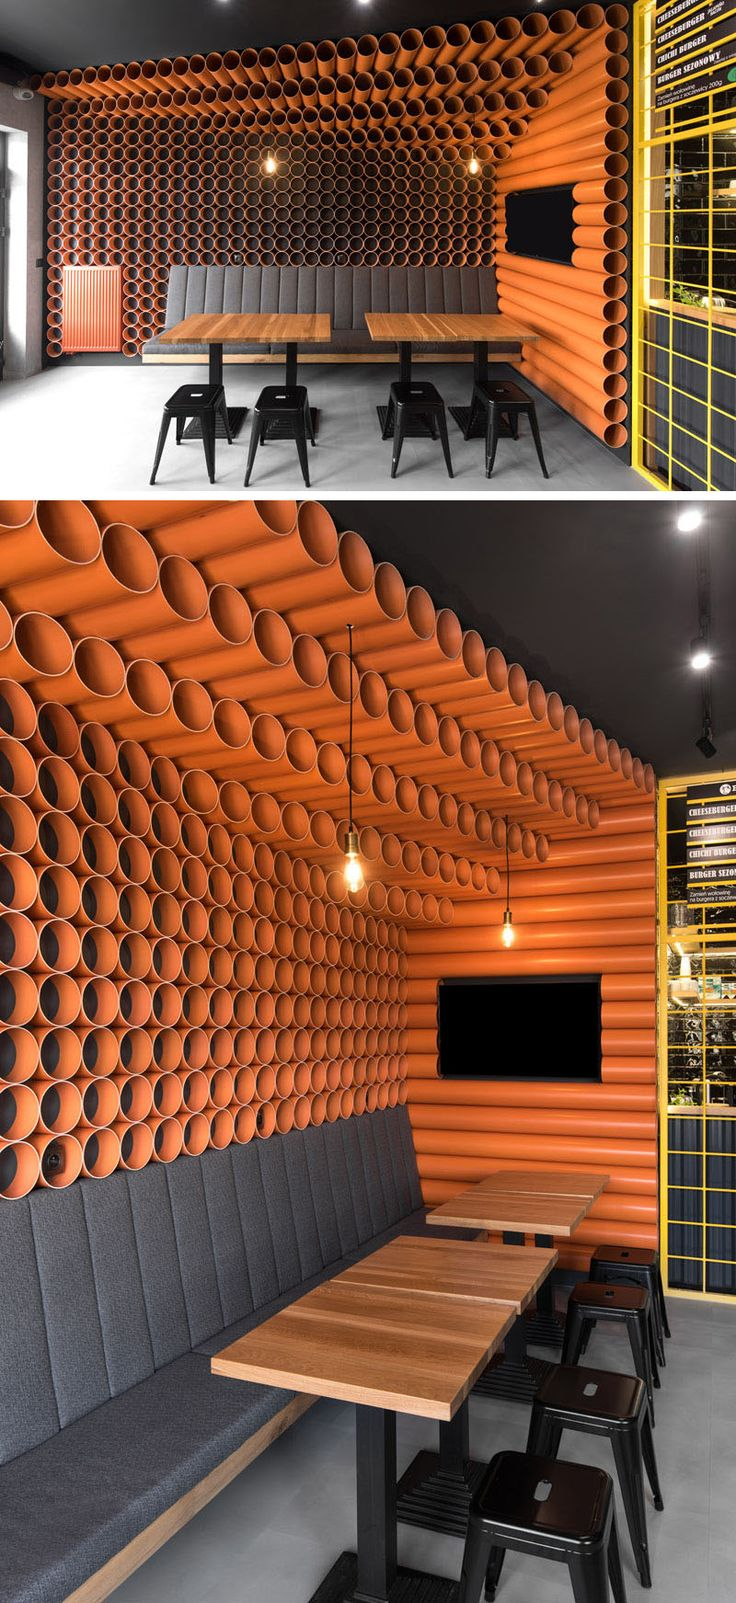 Almost 300 Orange PVC Pipes Cover The Walls Of This Burger Restaurant